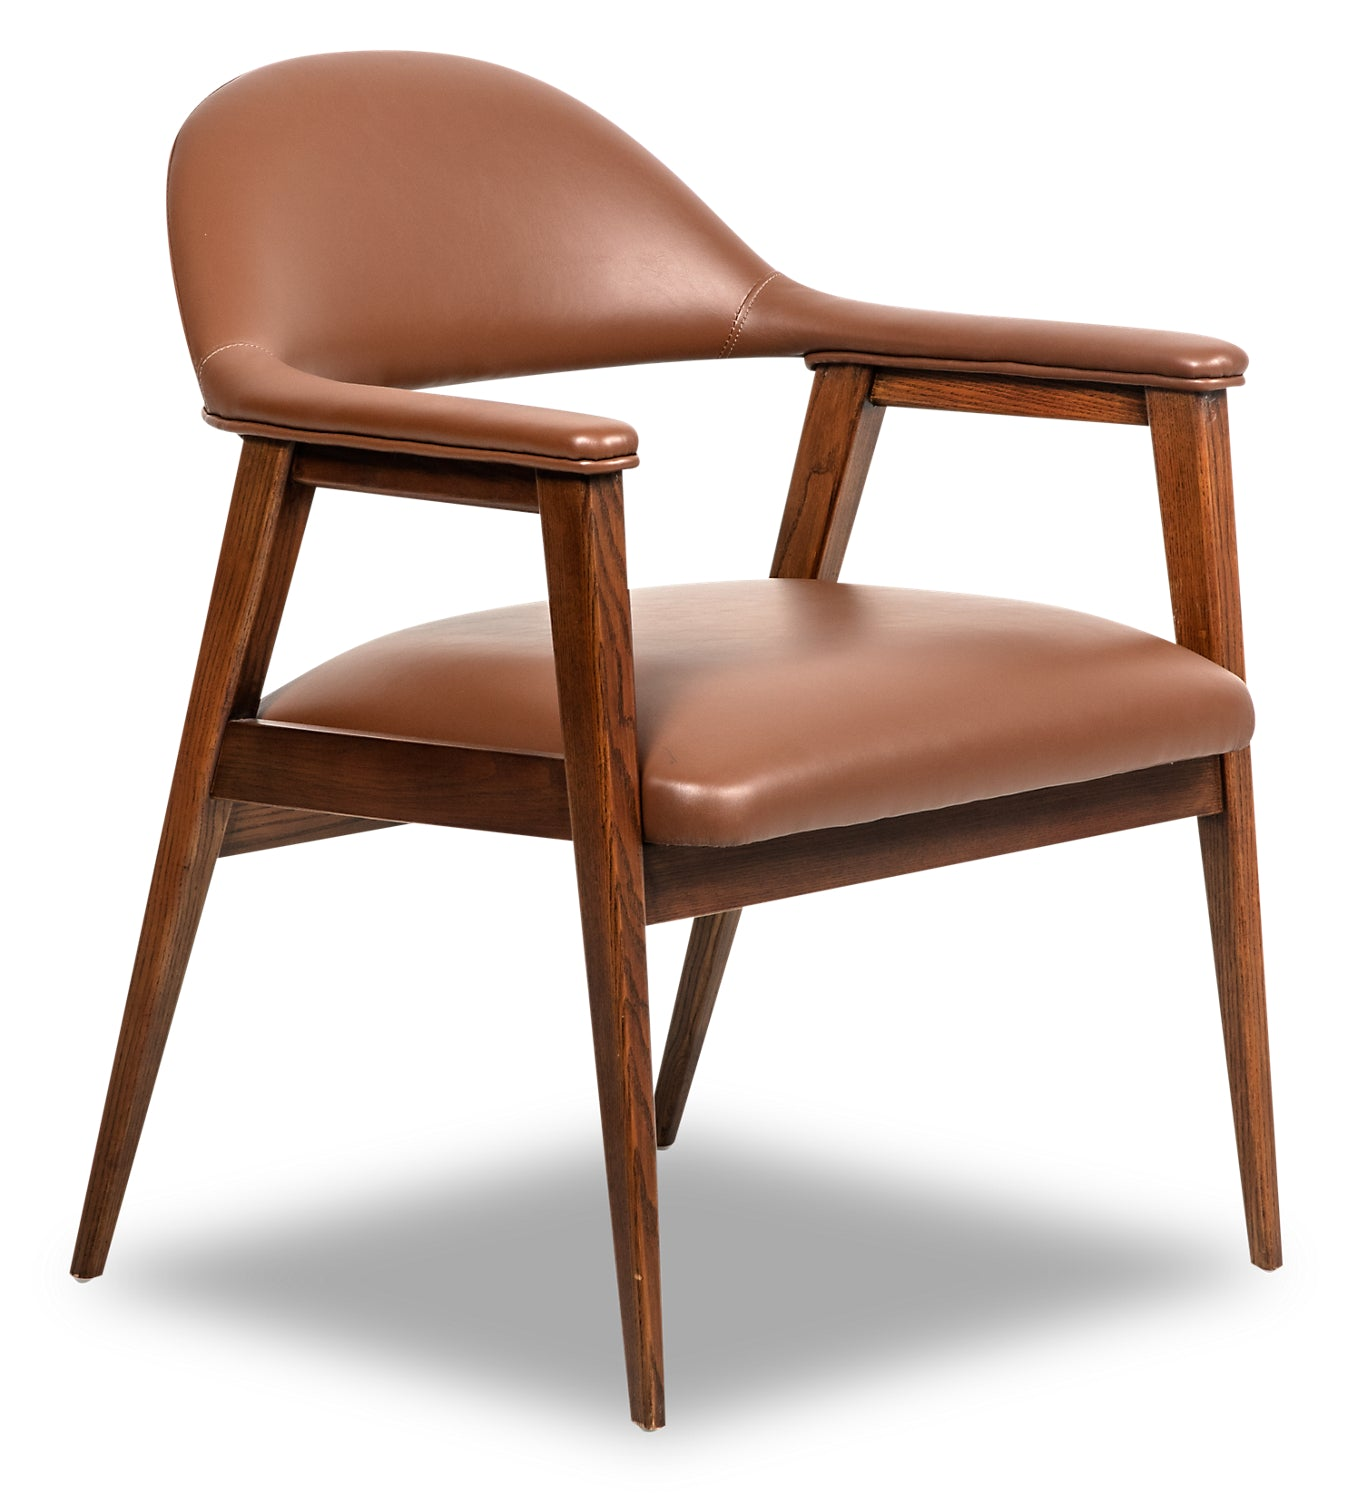 D'appoint Brun Robin Cuir Fauteuil D'apparence UpzSVqM